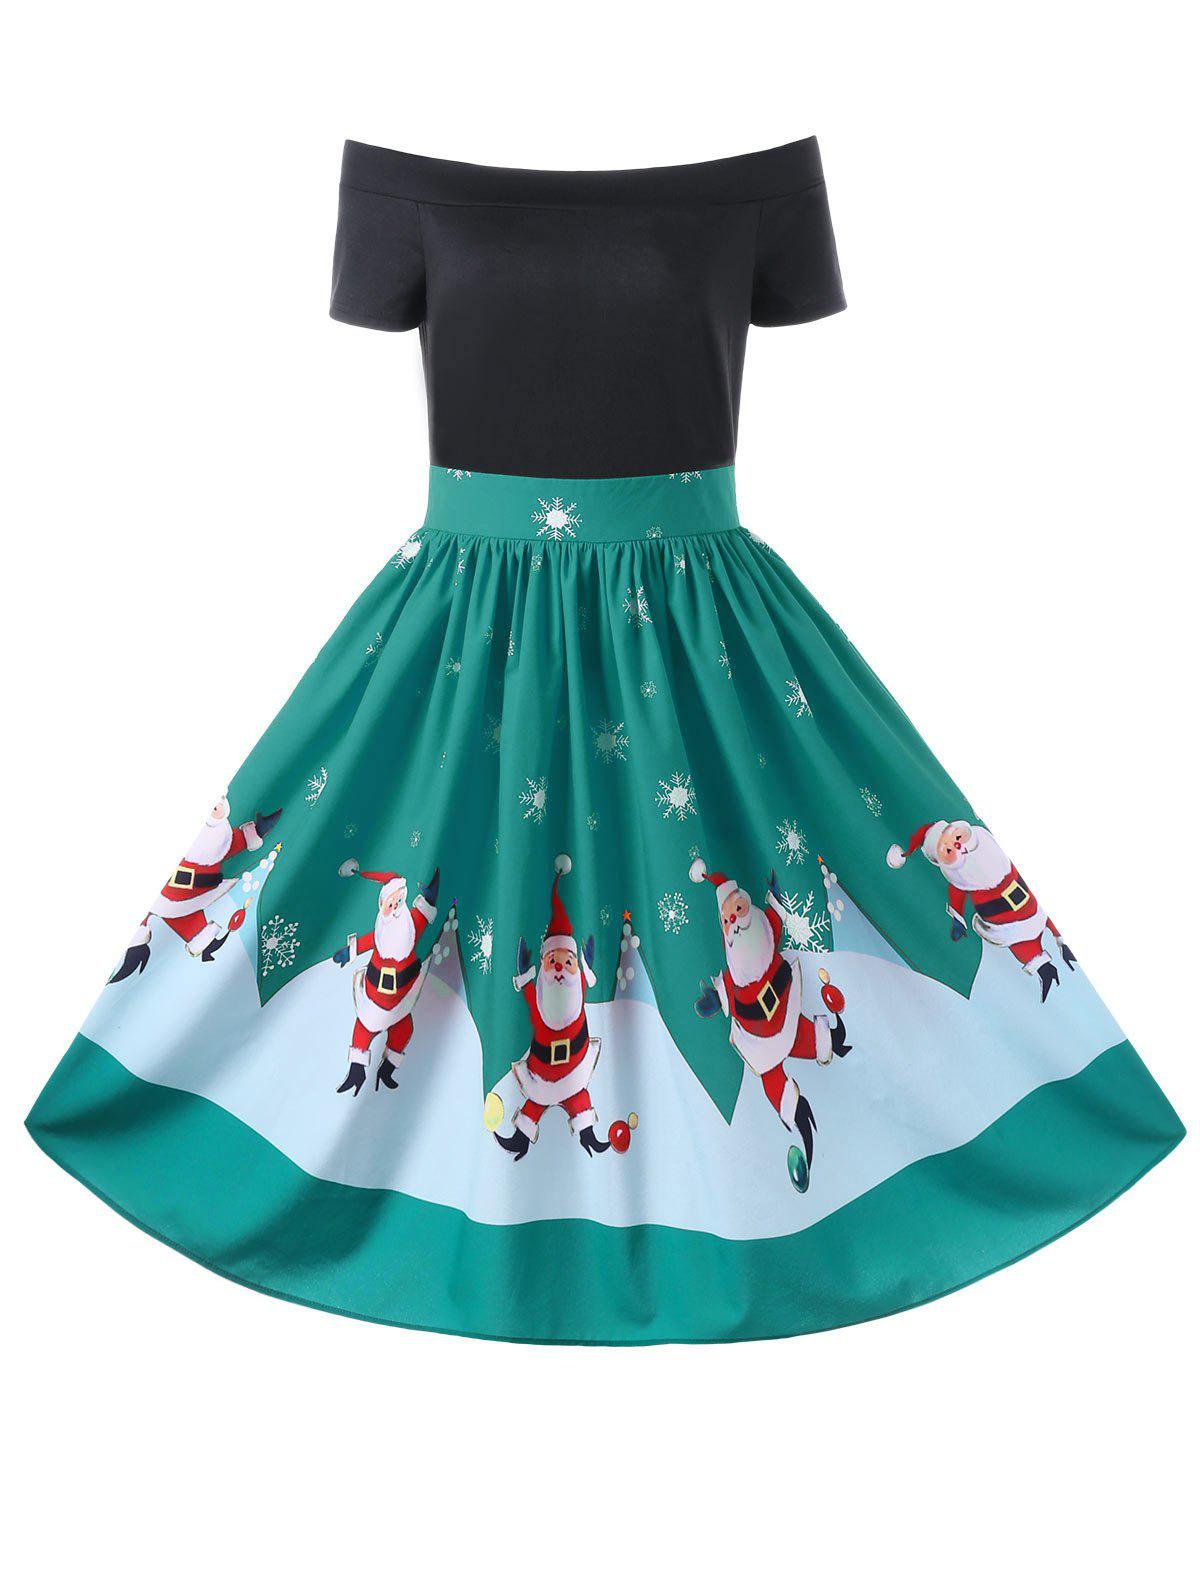 Christmas Off The Shoulder 50s Swing DressWOMEN<br><br>Size: L; Color: GREEN; Style: Vintage; Material: Polyester; Silhouette: A-Line; Dresses Length: Knee-Length; Neckline: Off The Shoulder; Sleeve Length: Short Sleeves; Pattern Type: Character; With Belt: No; Season: Fall,Spring,Summer; Weight: 0.3300kg; Package Contents: 1 x Dress;